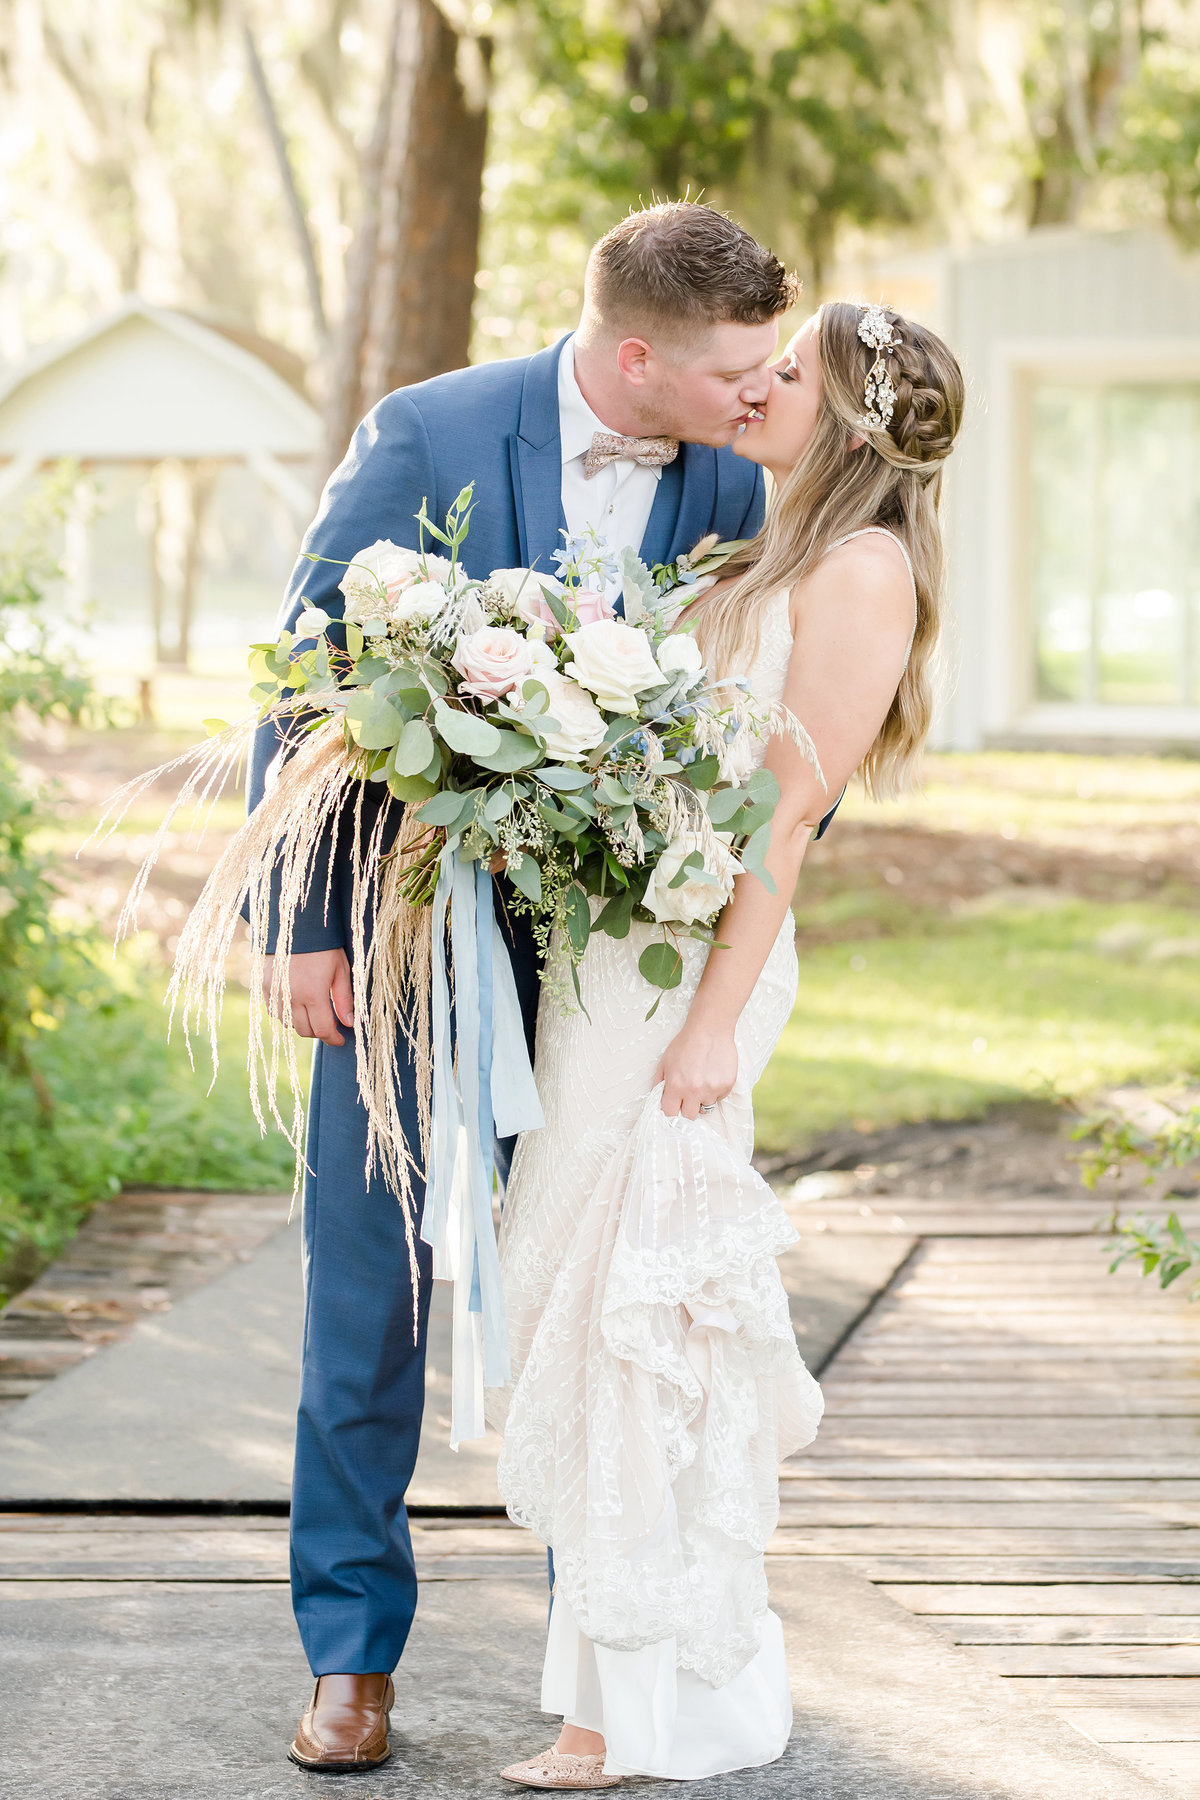 Bride and groom embrace and kiss holding bouquet